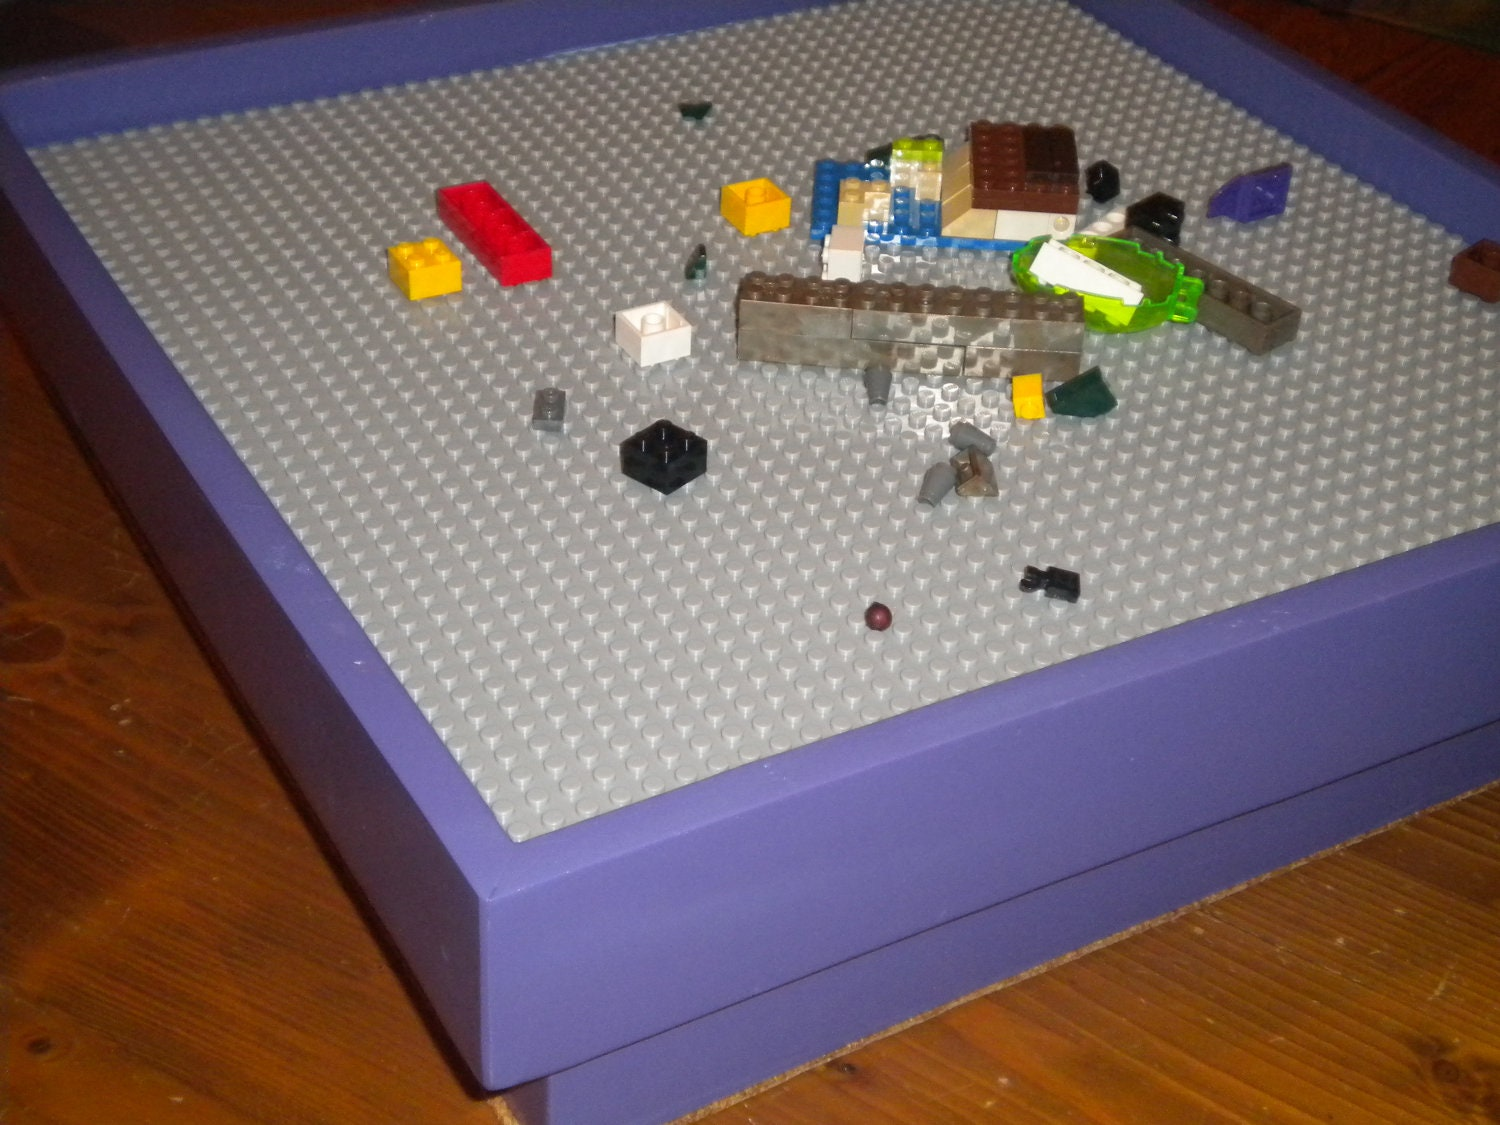 Lego Play Table with 15x15 baseplate Lego by GrantsFrontier